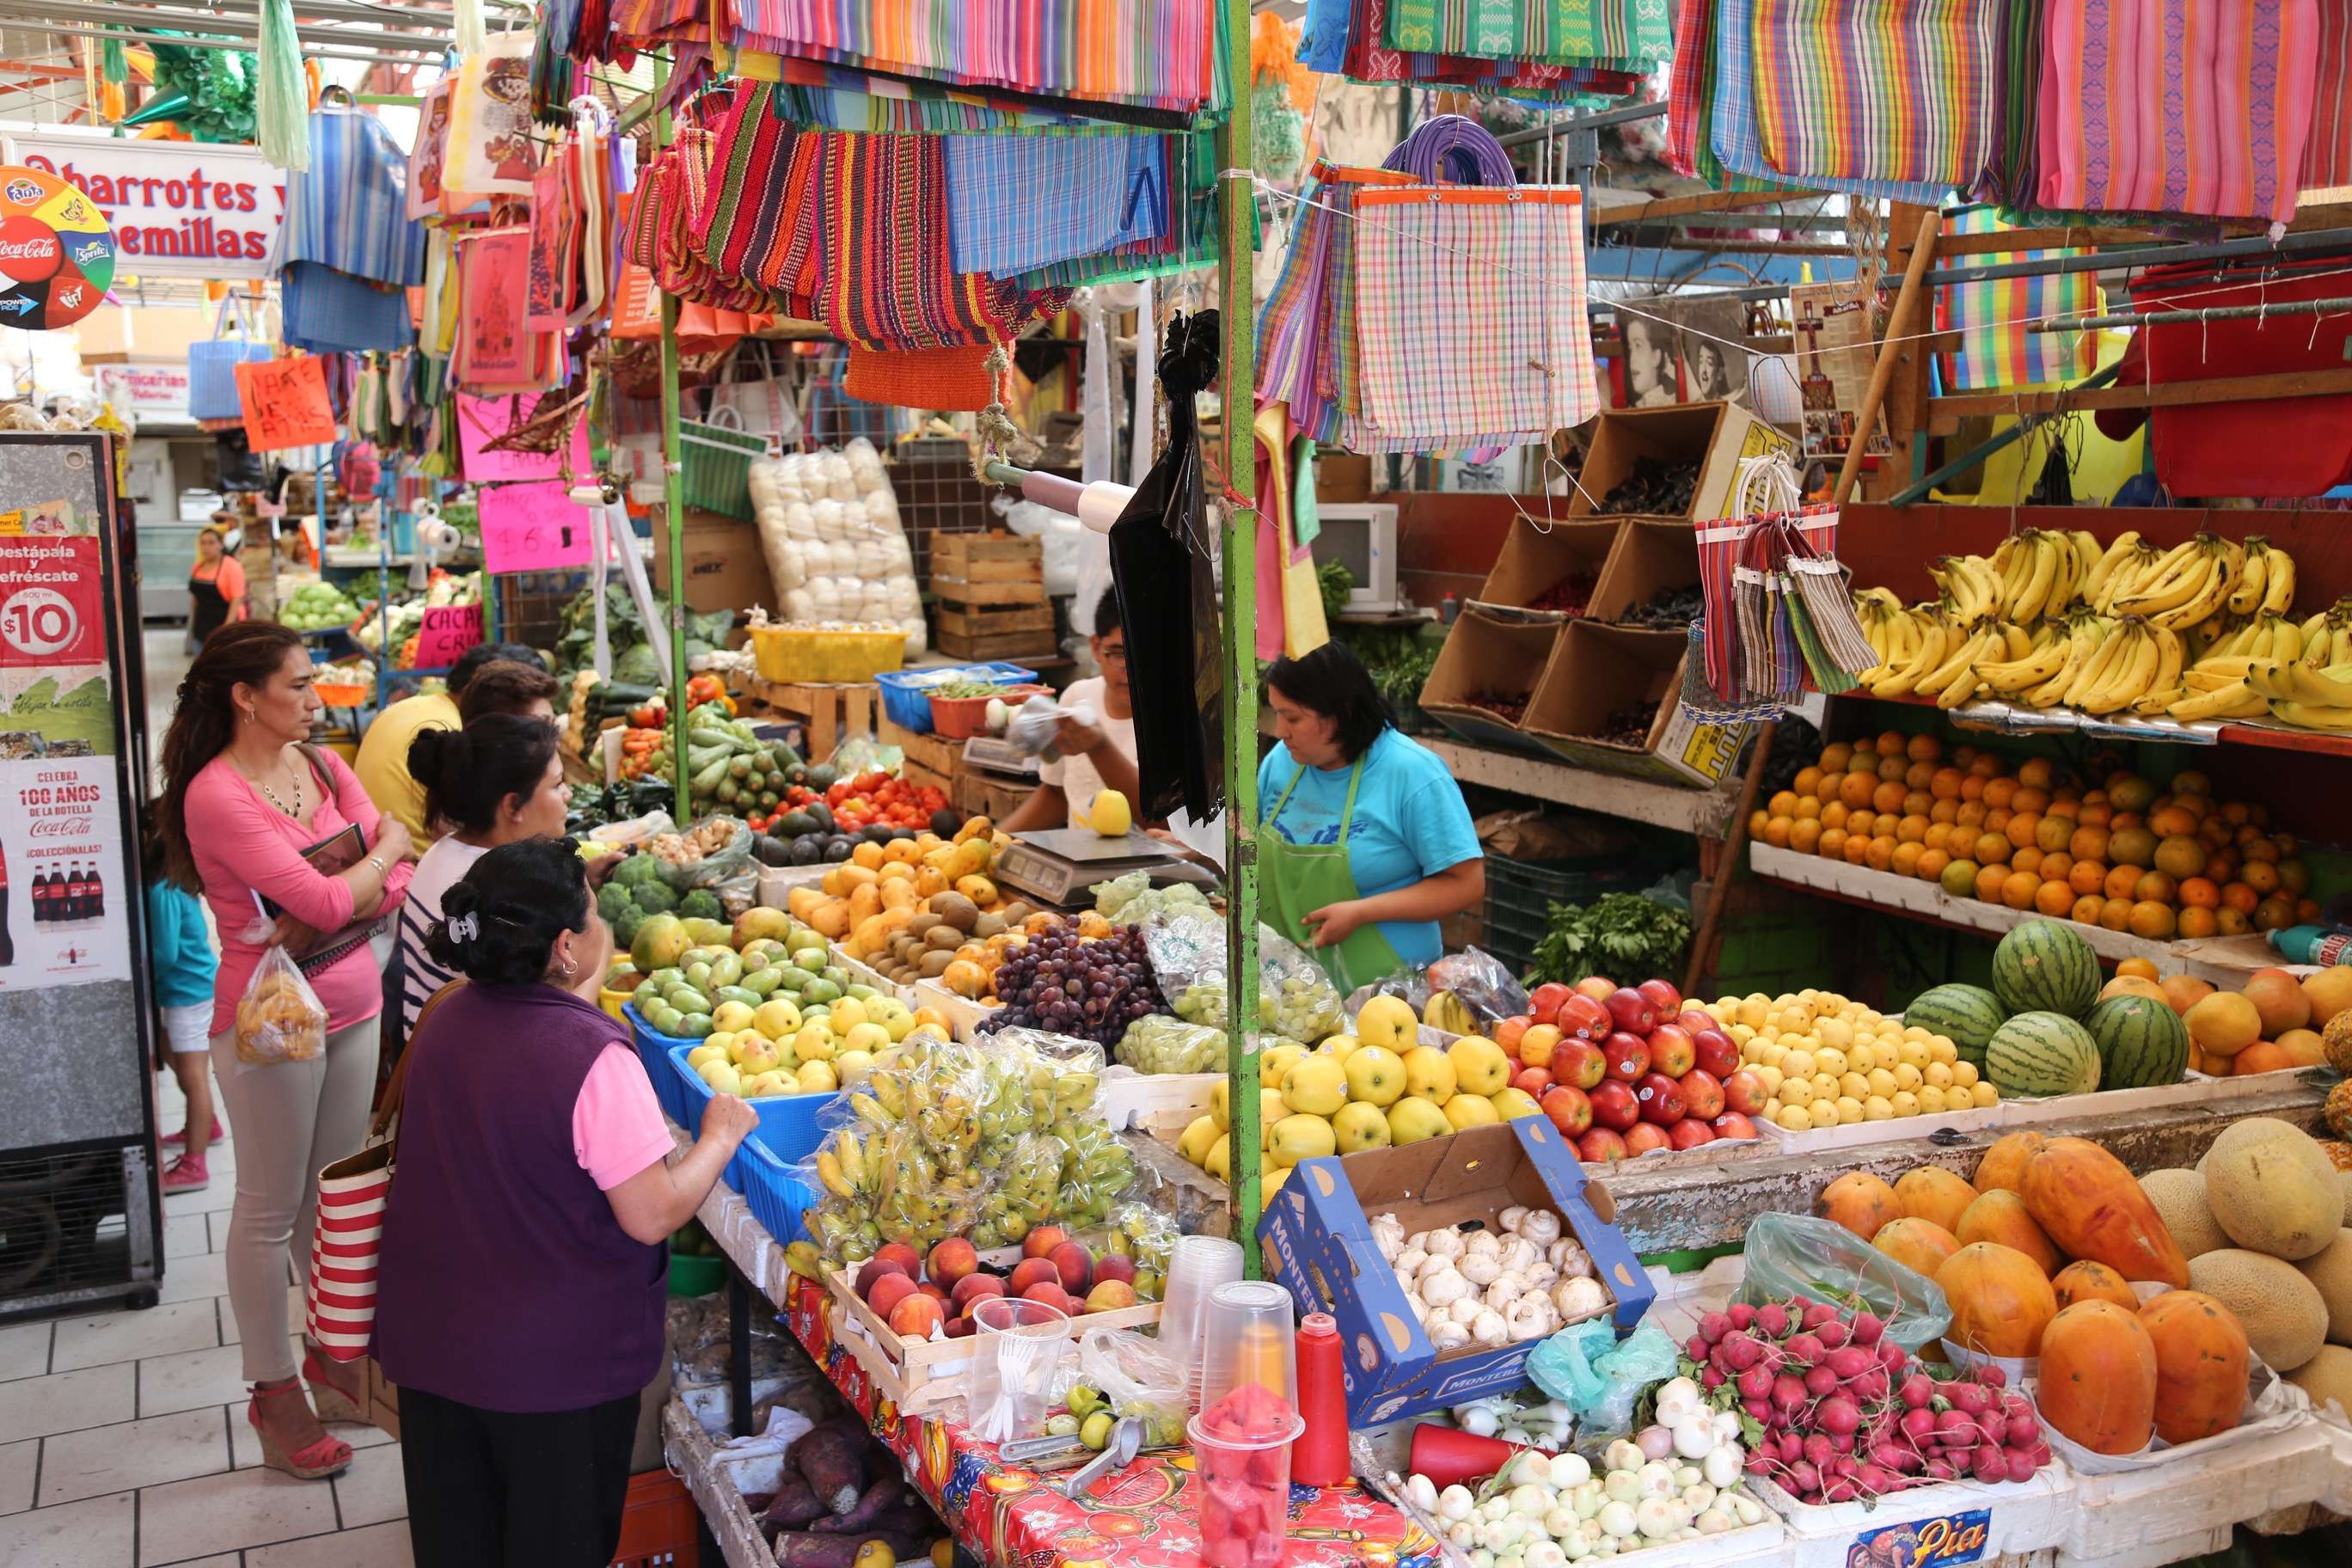 Shopping means you go one place for food, another for staple goods and yet somewhere else for meat. This fruit and vegetable stand always does a brisk business.